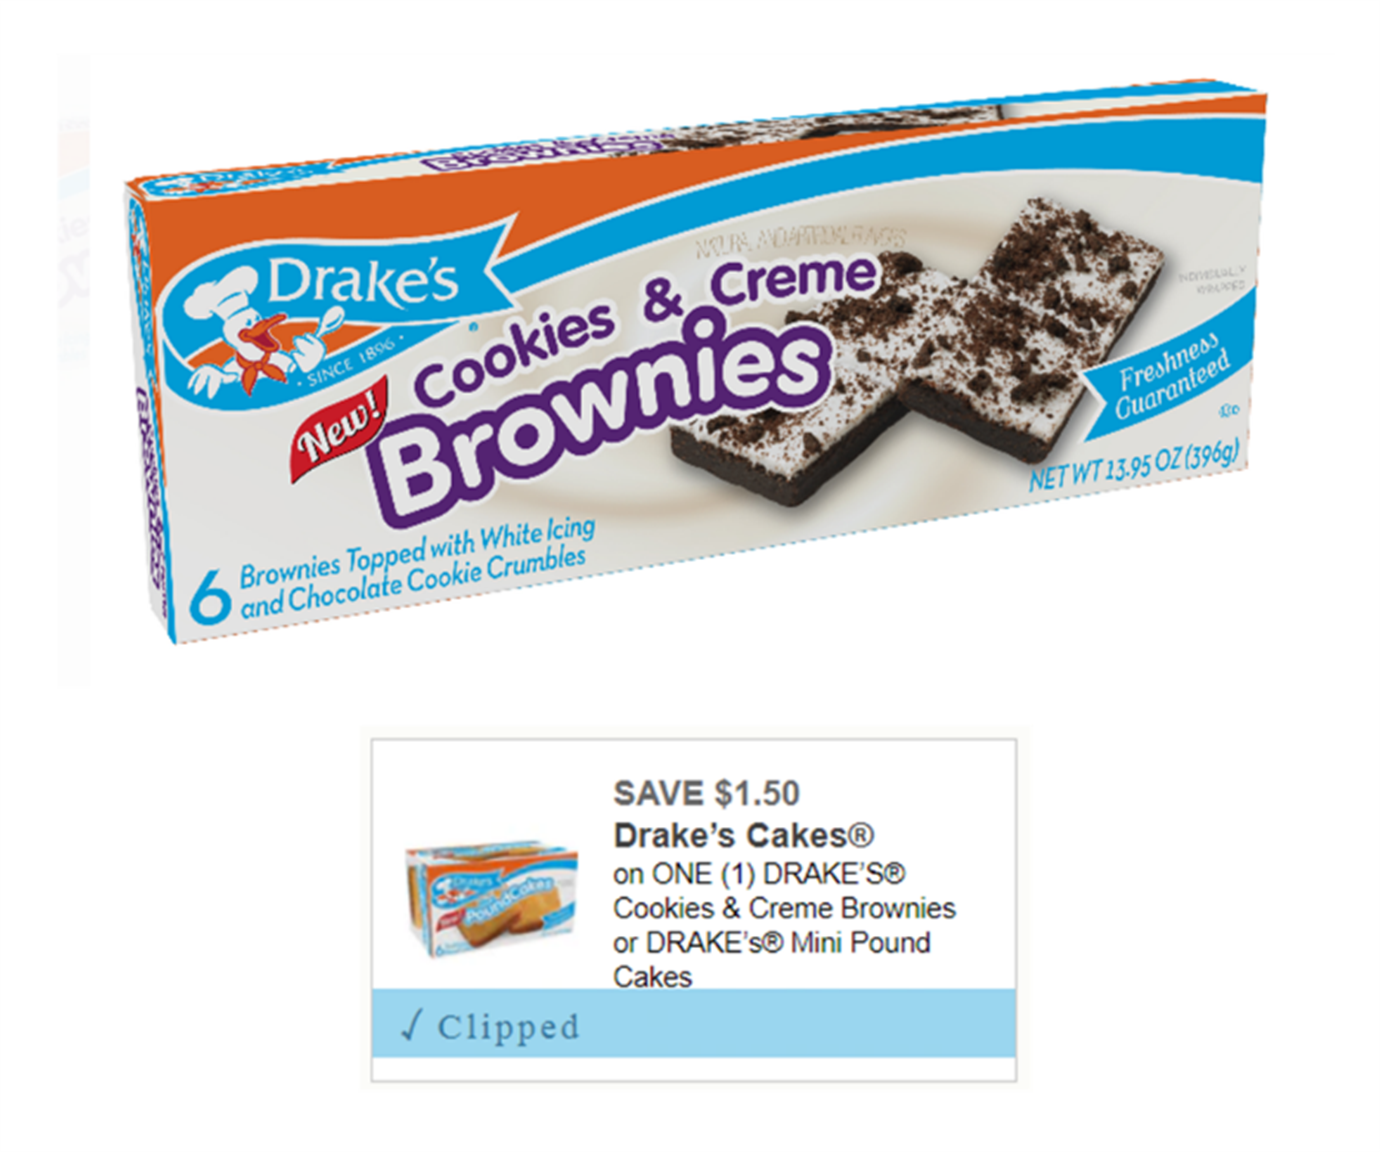 High Value Printable Coupon – Save $1.50 on ONE (1) Drake's Cake Product! Only 98¢ At Walmart!